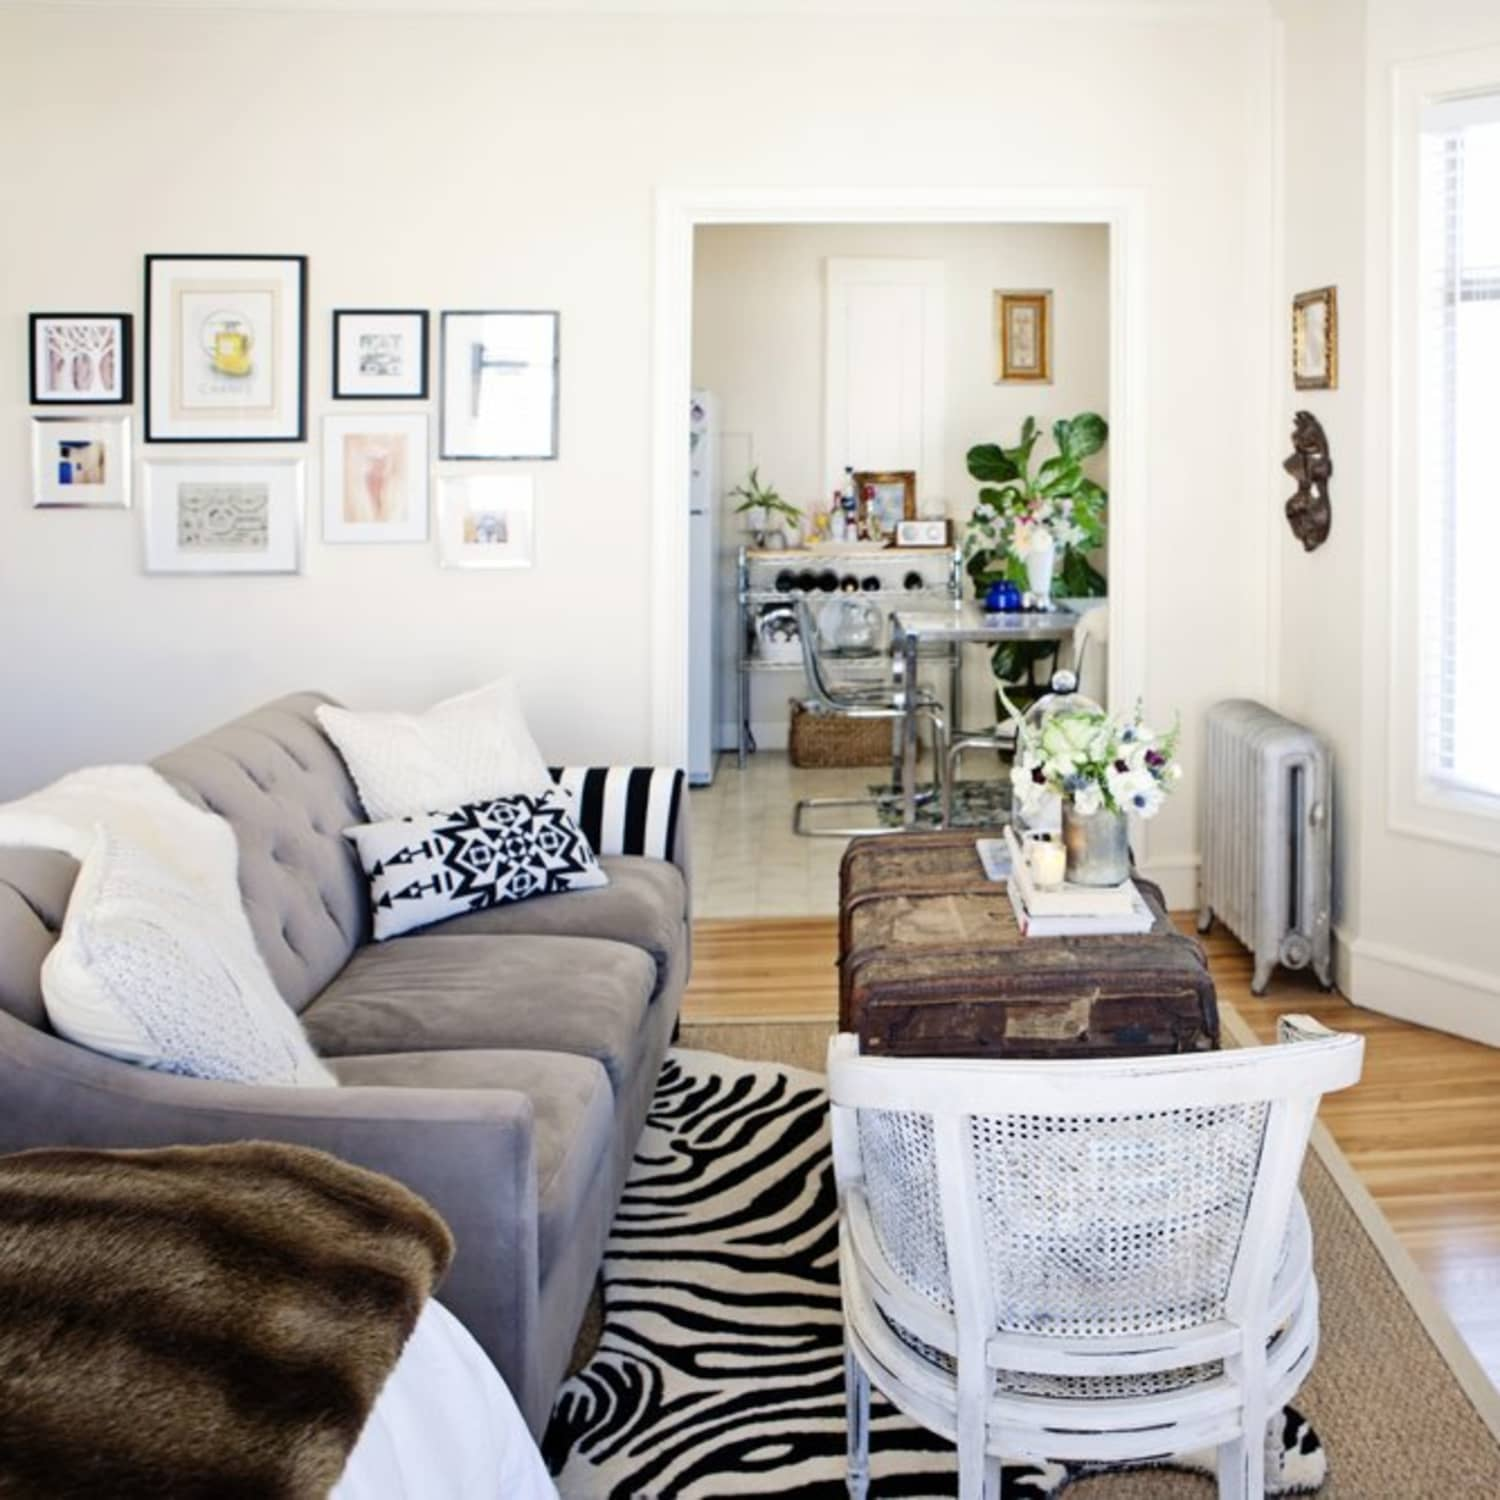 This What You Can Really Expect From Spaces Smaller Than 500 Square Feet Apartment Therapy,Home Design And Remodeling Show